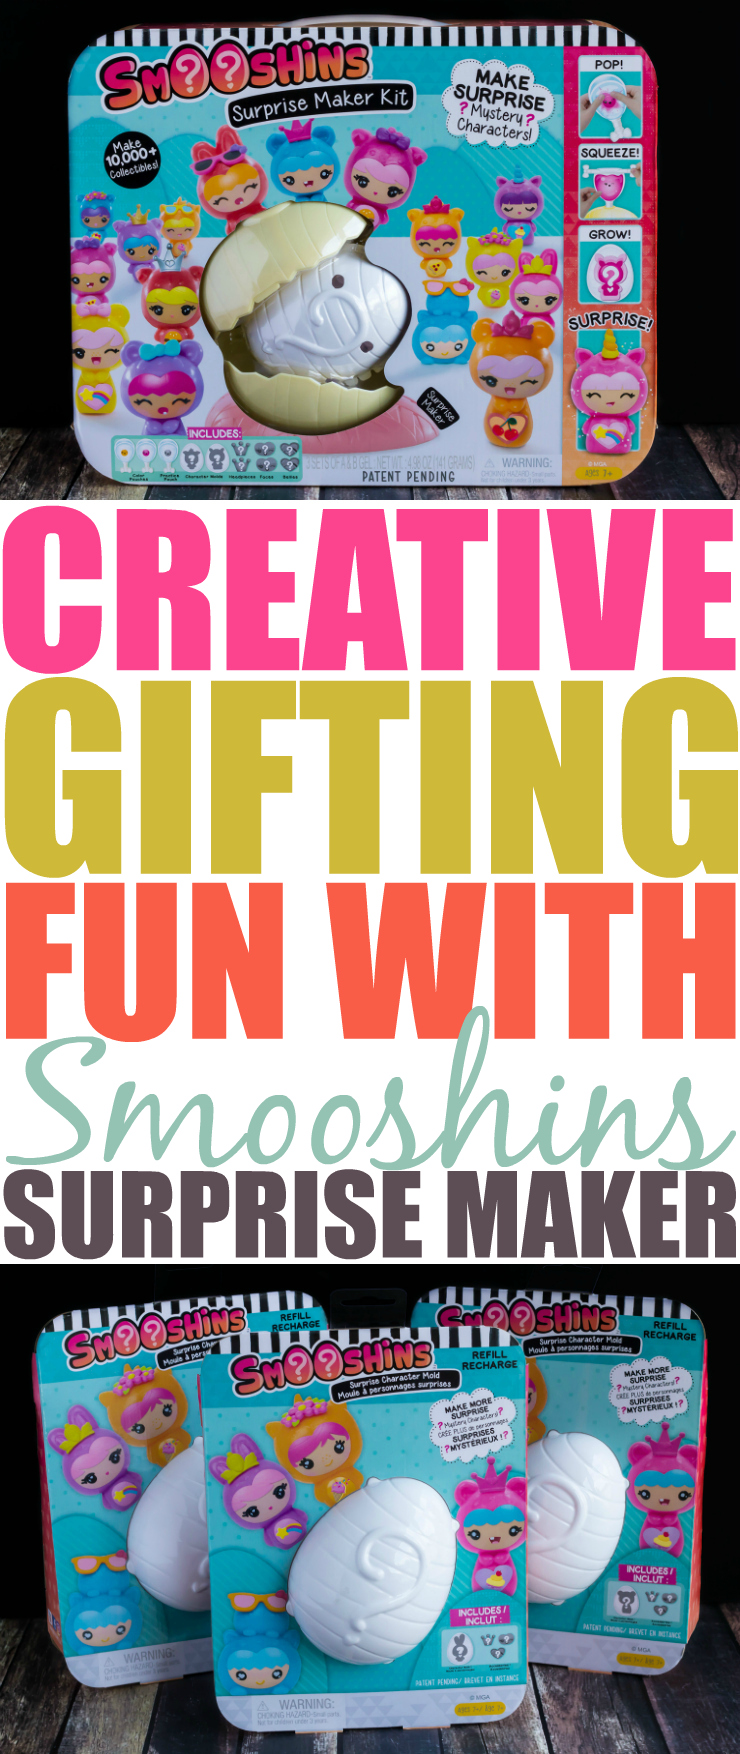 Give the gift of creativity and surprise with the Smooshins Surprise Maker Kit. It's a perfect gift for the creative child who loves surprises!